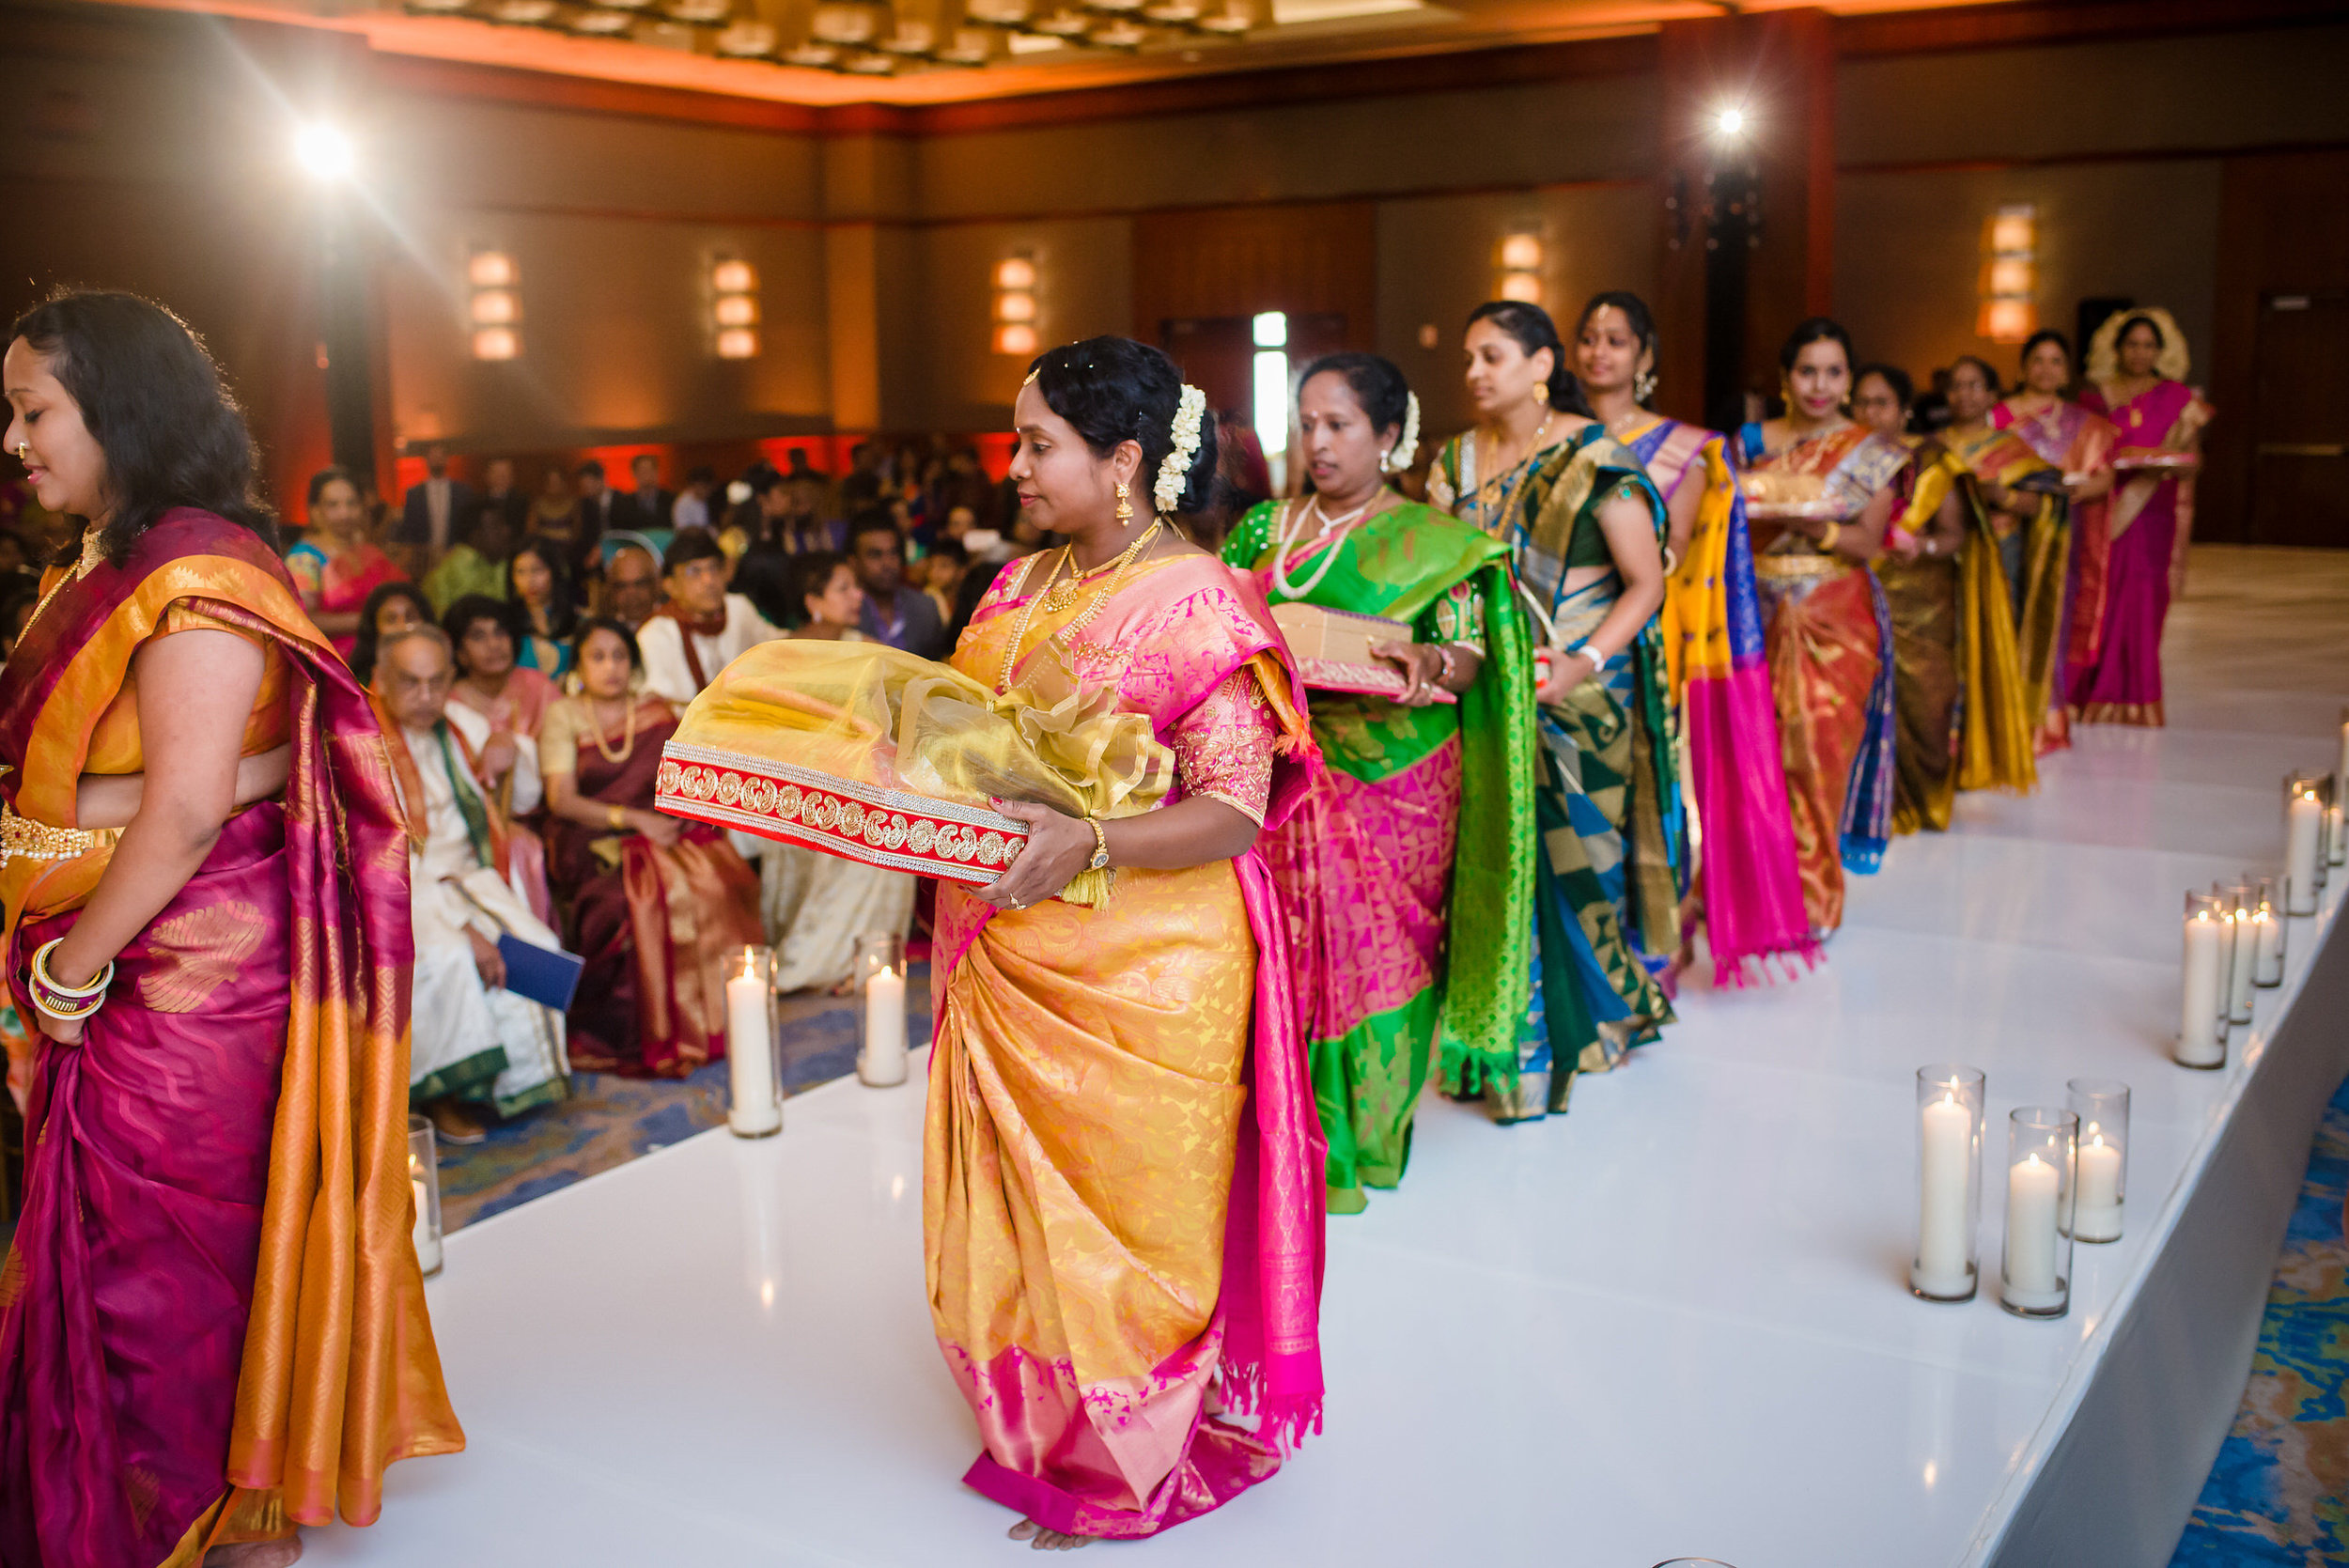 Parneeta-Sravan-Wedding-0595.jpg